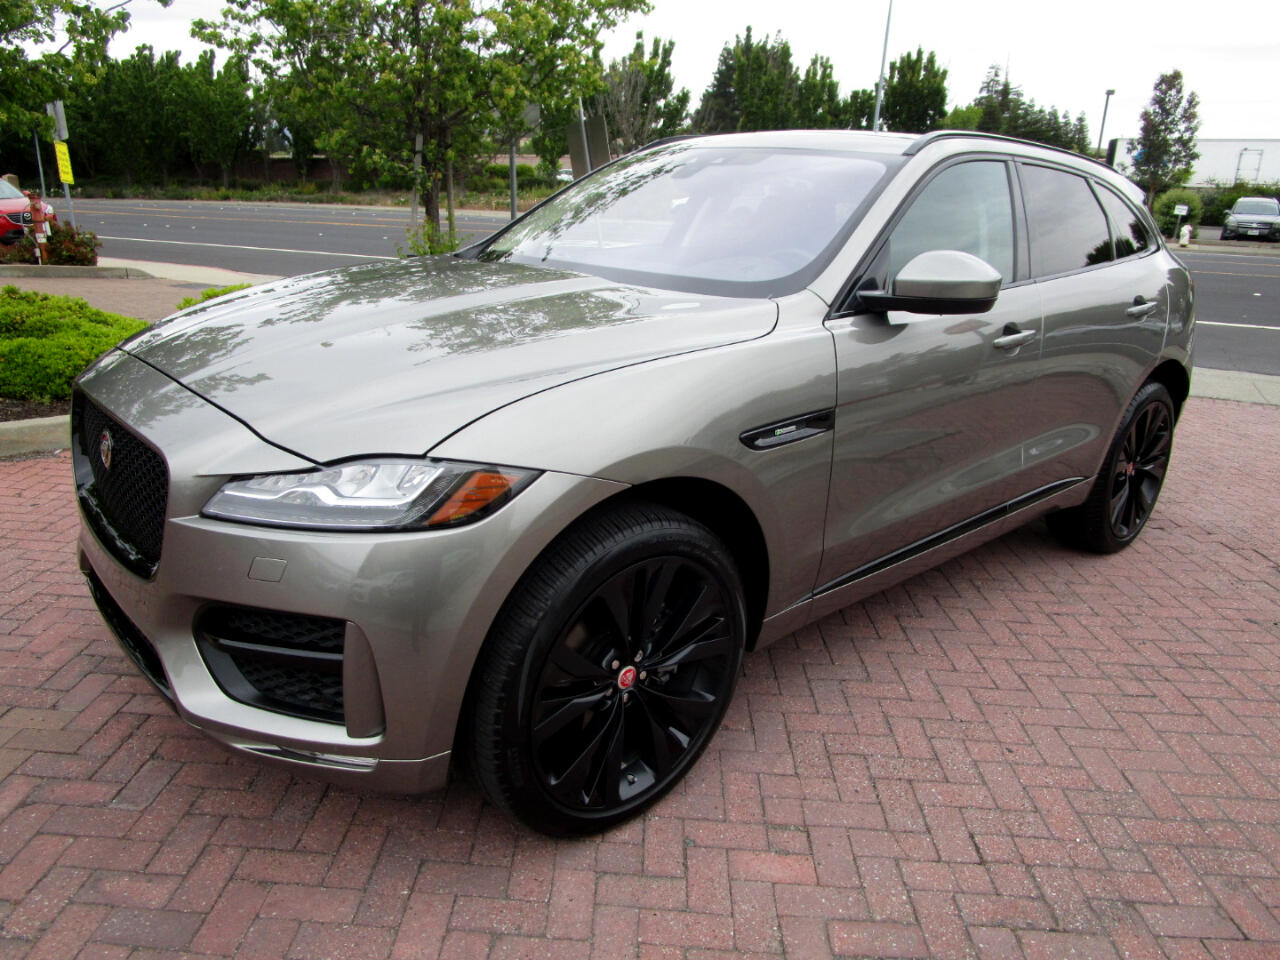 2018 Jaguar F-Pace 35T R-SPORT**AWD*DRIVER ASSIST**PANO**HEAT SEATS**